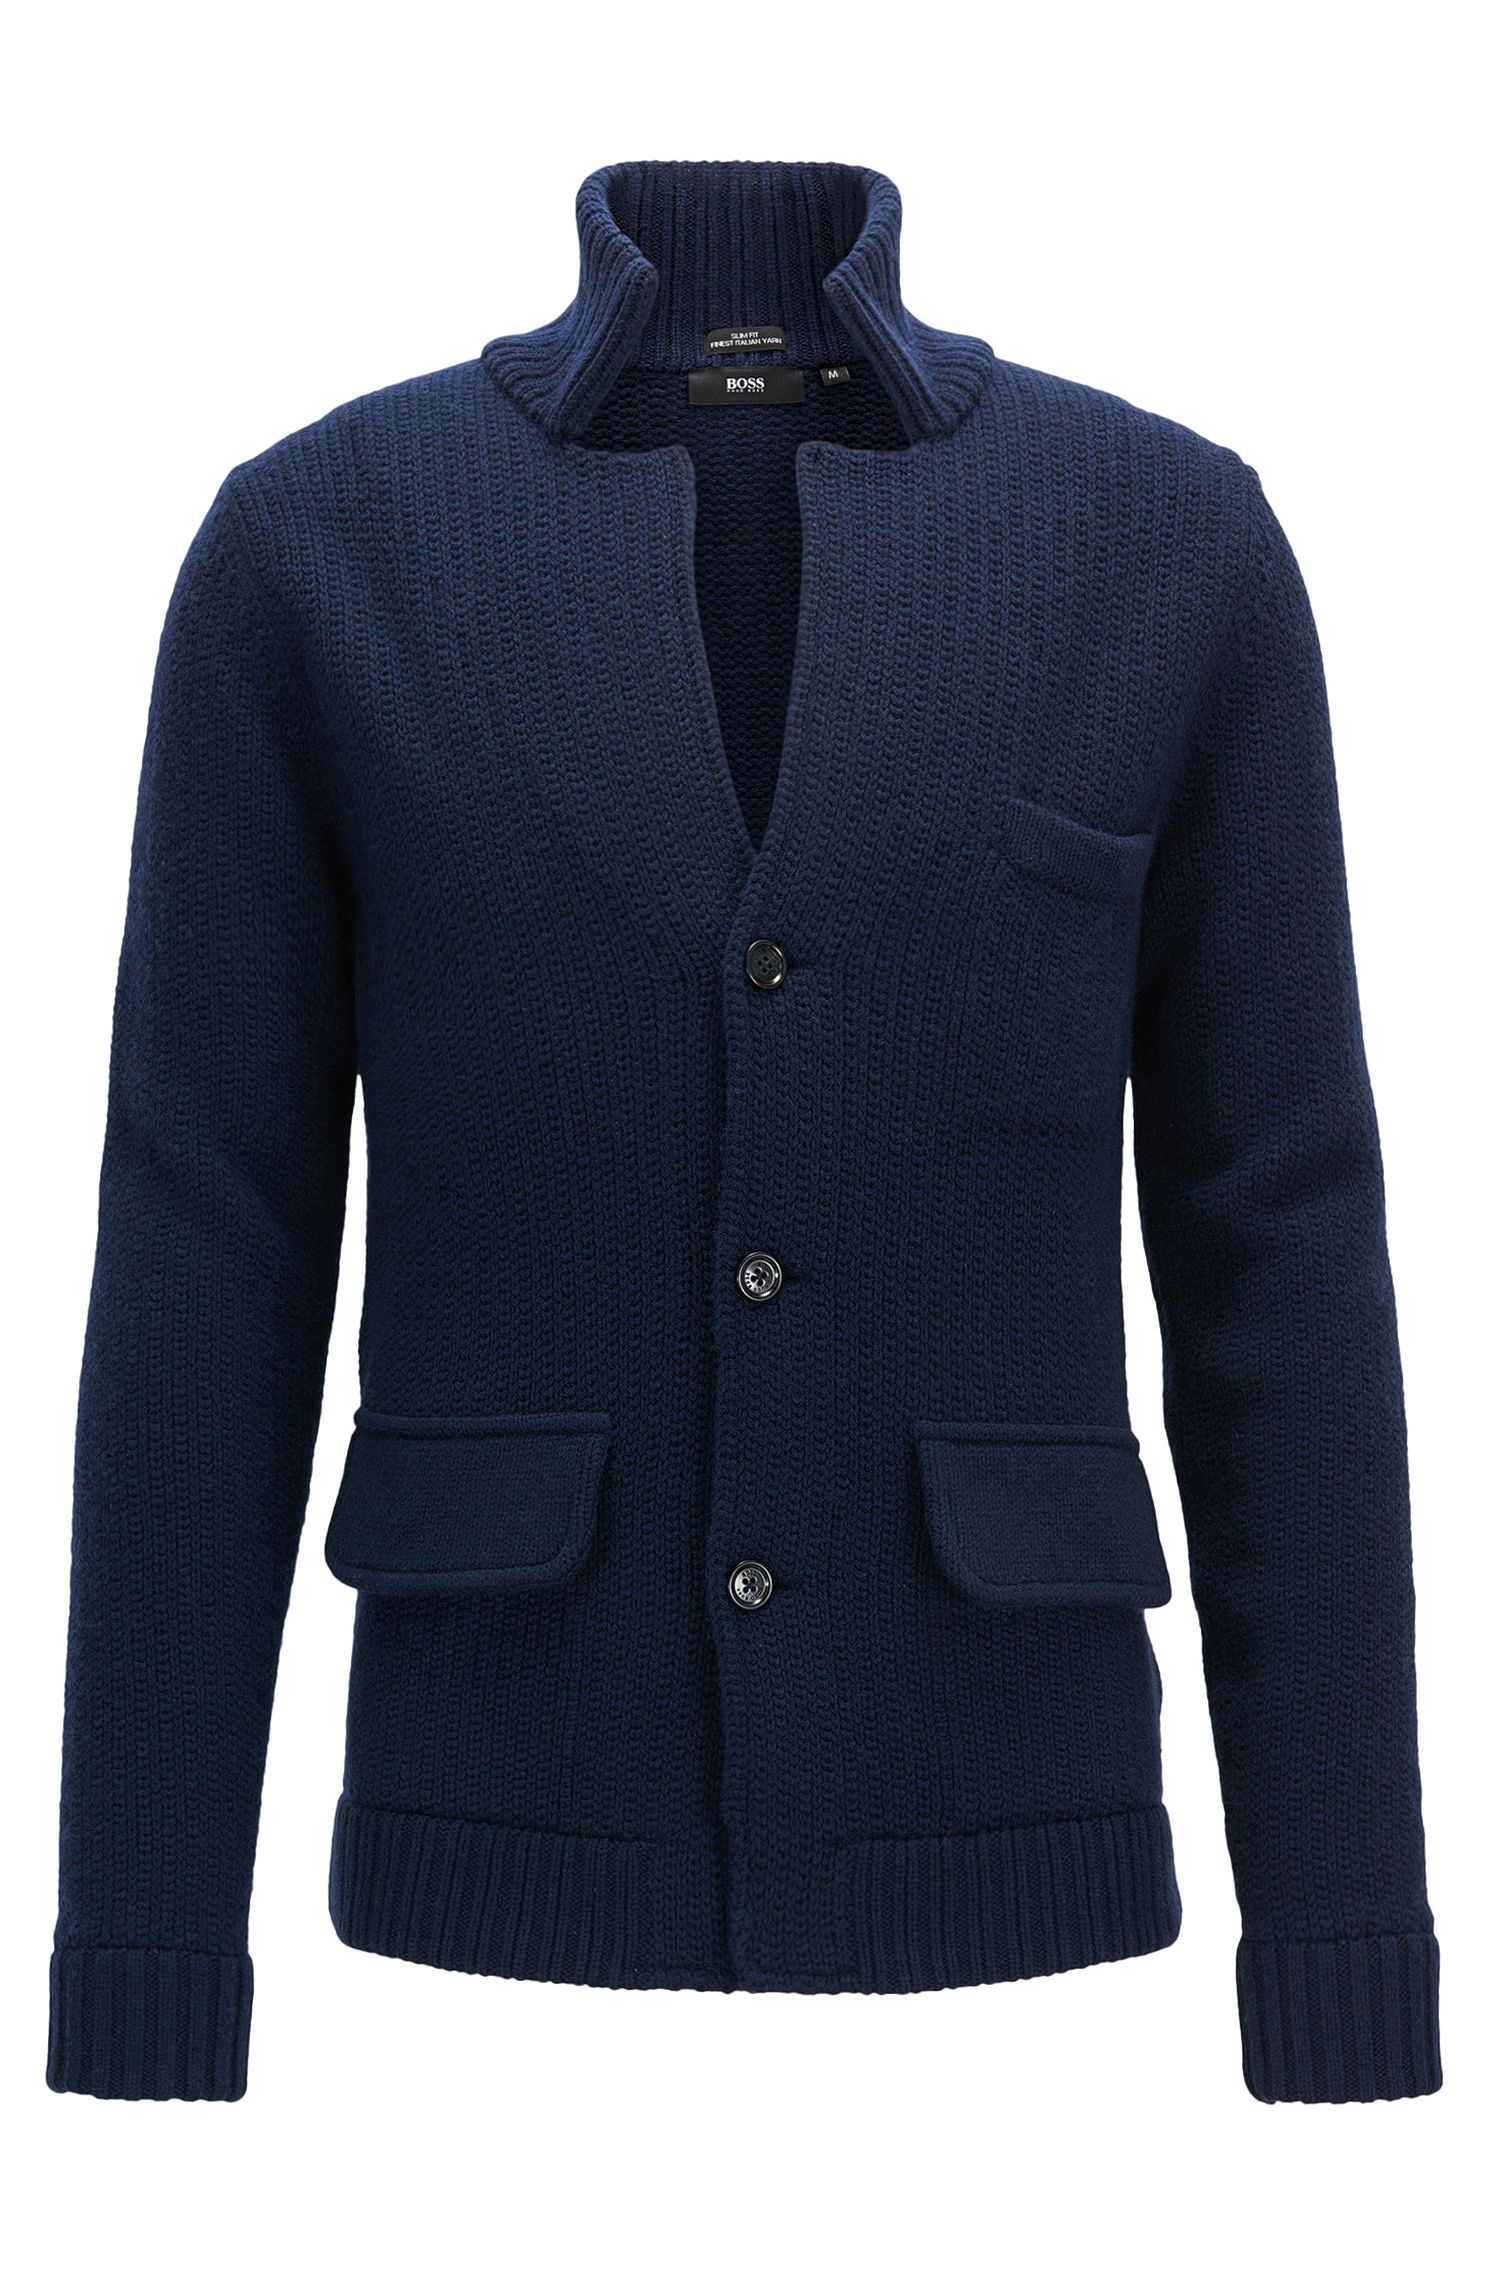 Slim-fit knitted jacket in a wool blend